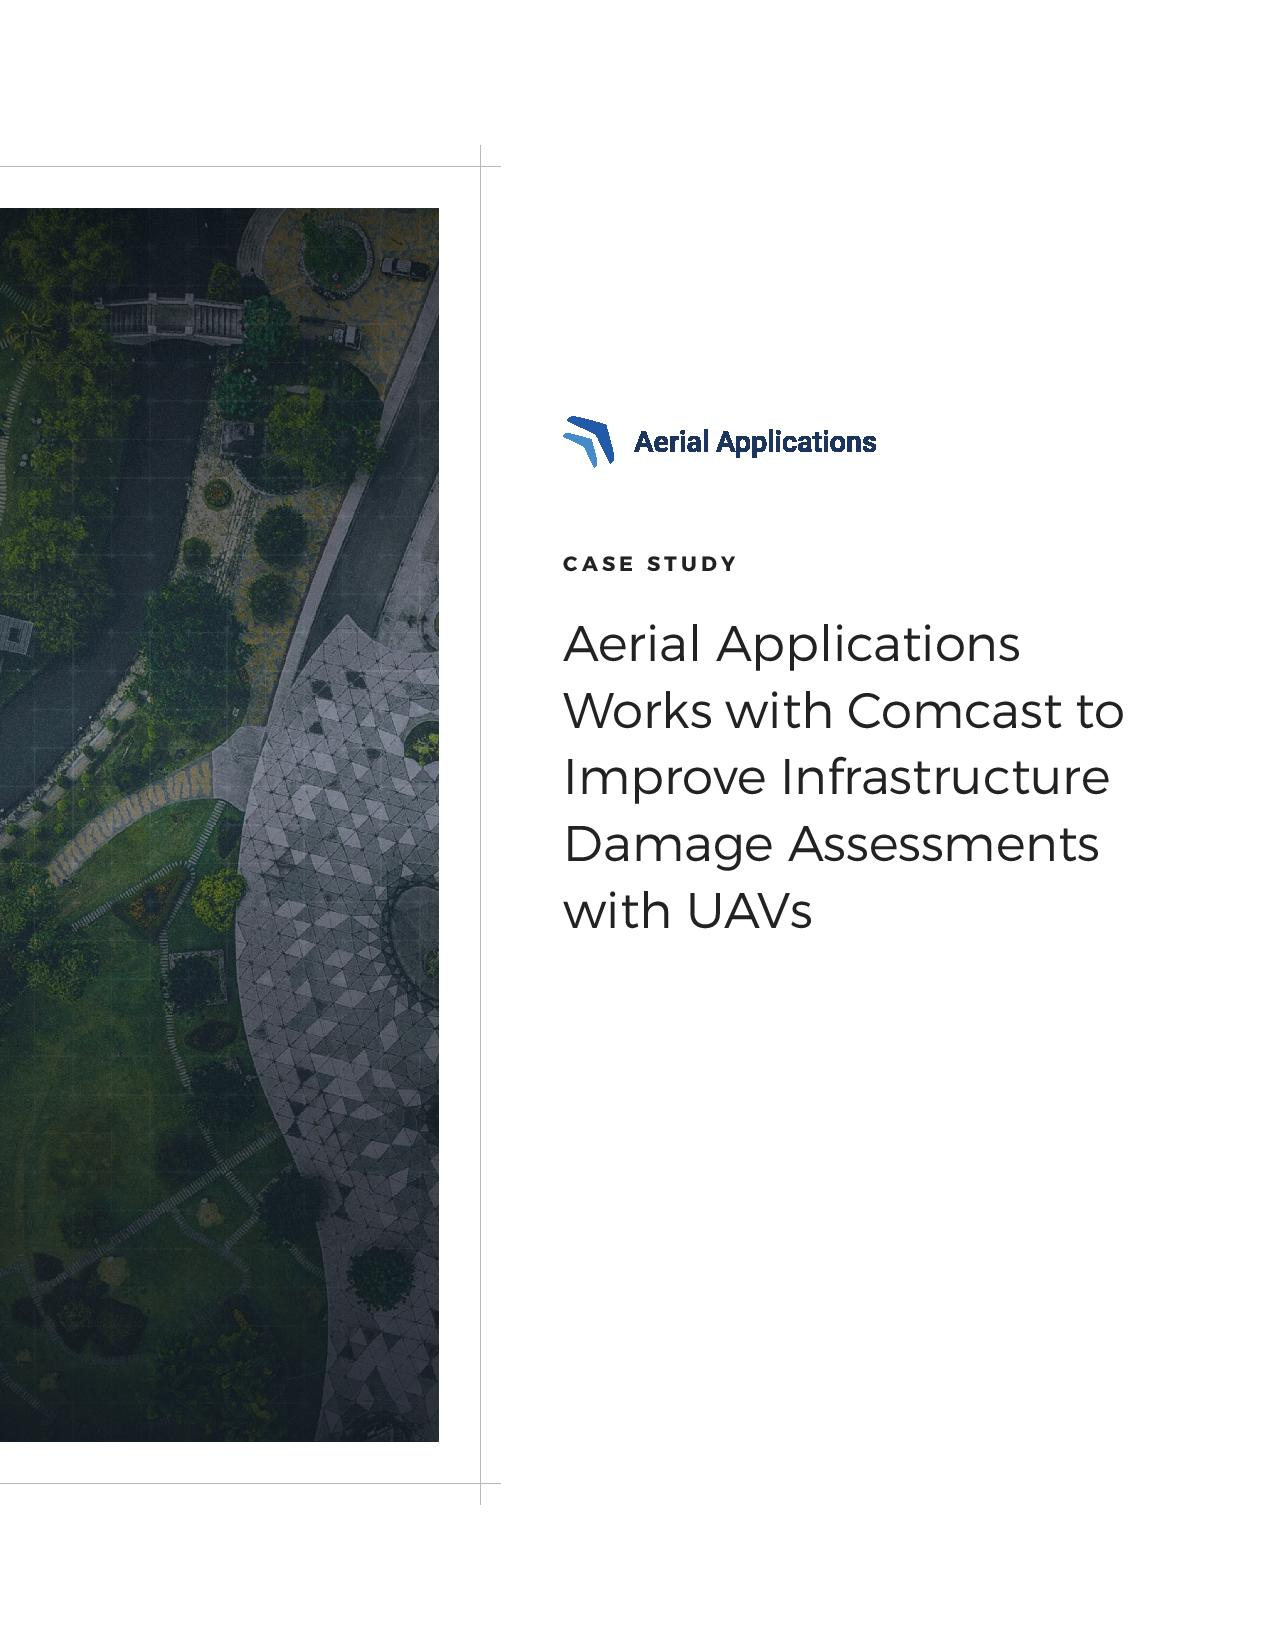 Aerial_Applications_Aerial_Applications_Works_with_Comcast_to_Improve_Infrastructure_Damage_Assessments_with_UAVs_Case_Study_Featured_Image